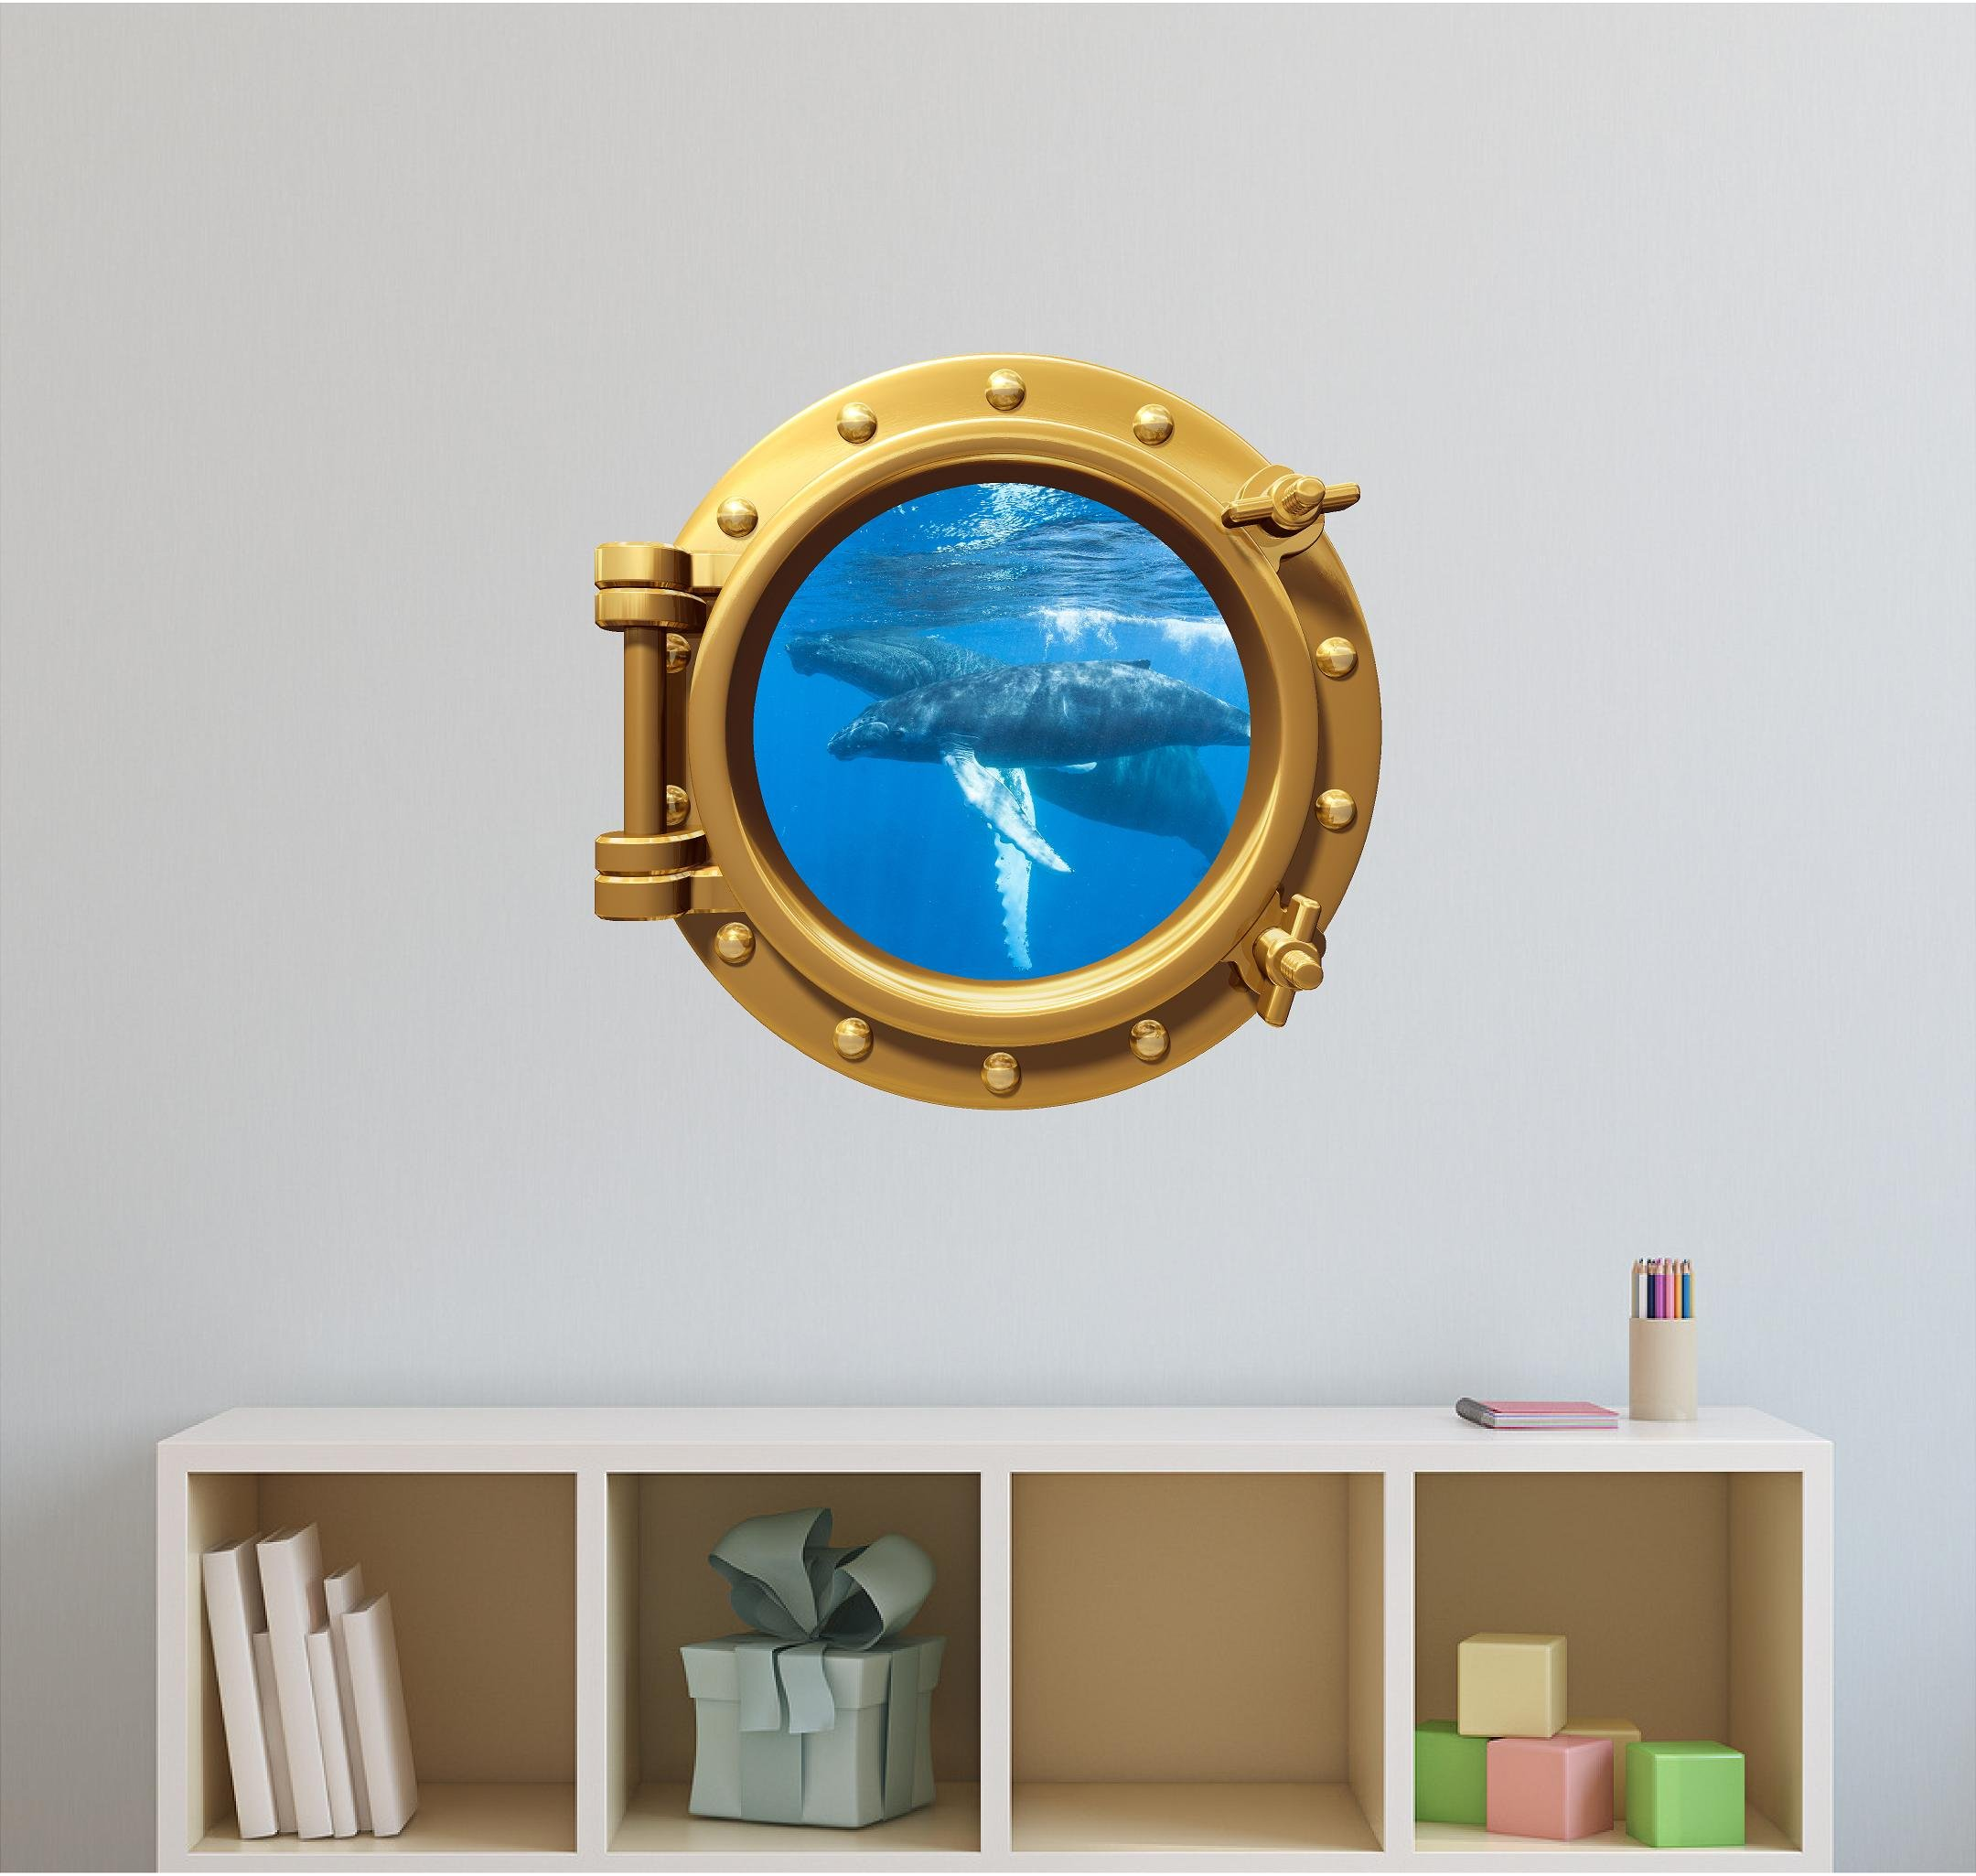 24'' Port Scape WALL DECAL! HUMPBACK WHALE #1 BRONZE Porthole Sticker Large Mural for Kids Rooms